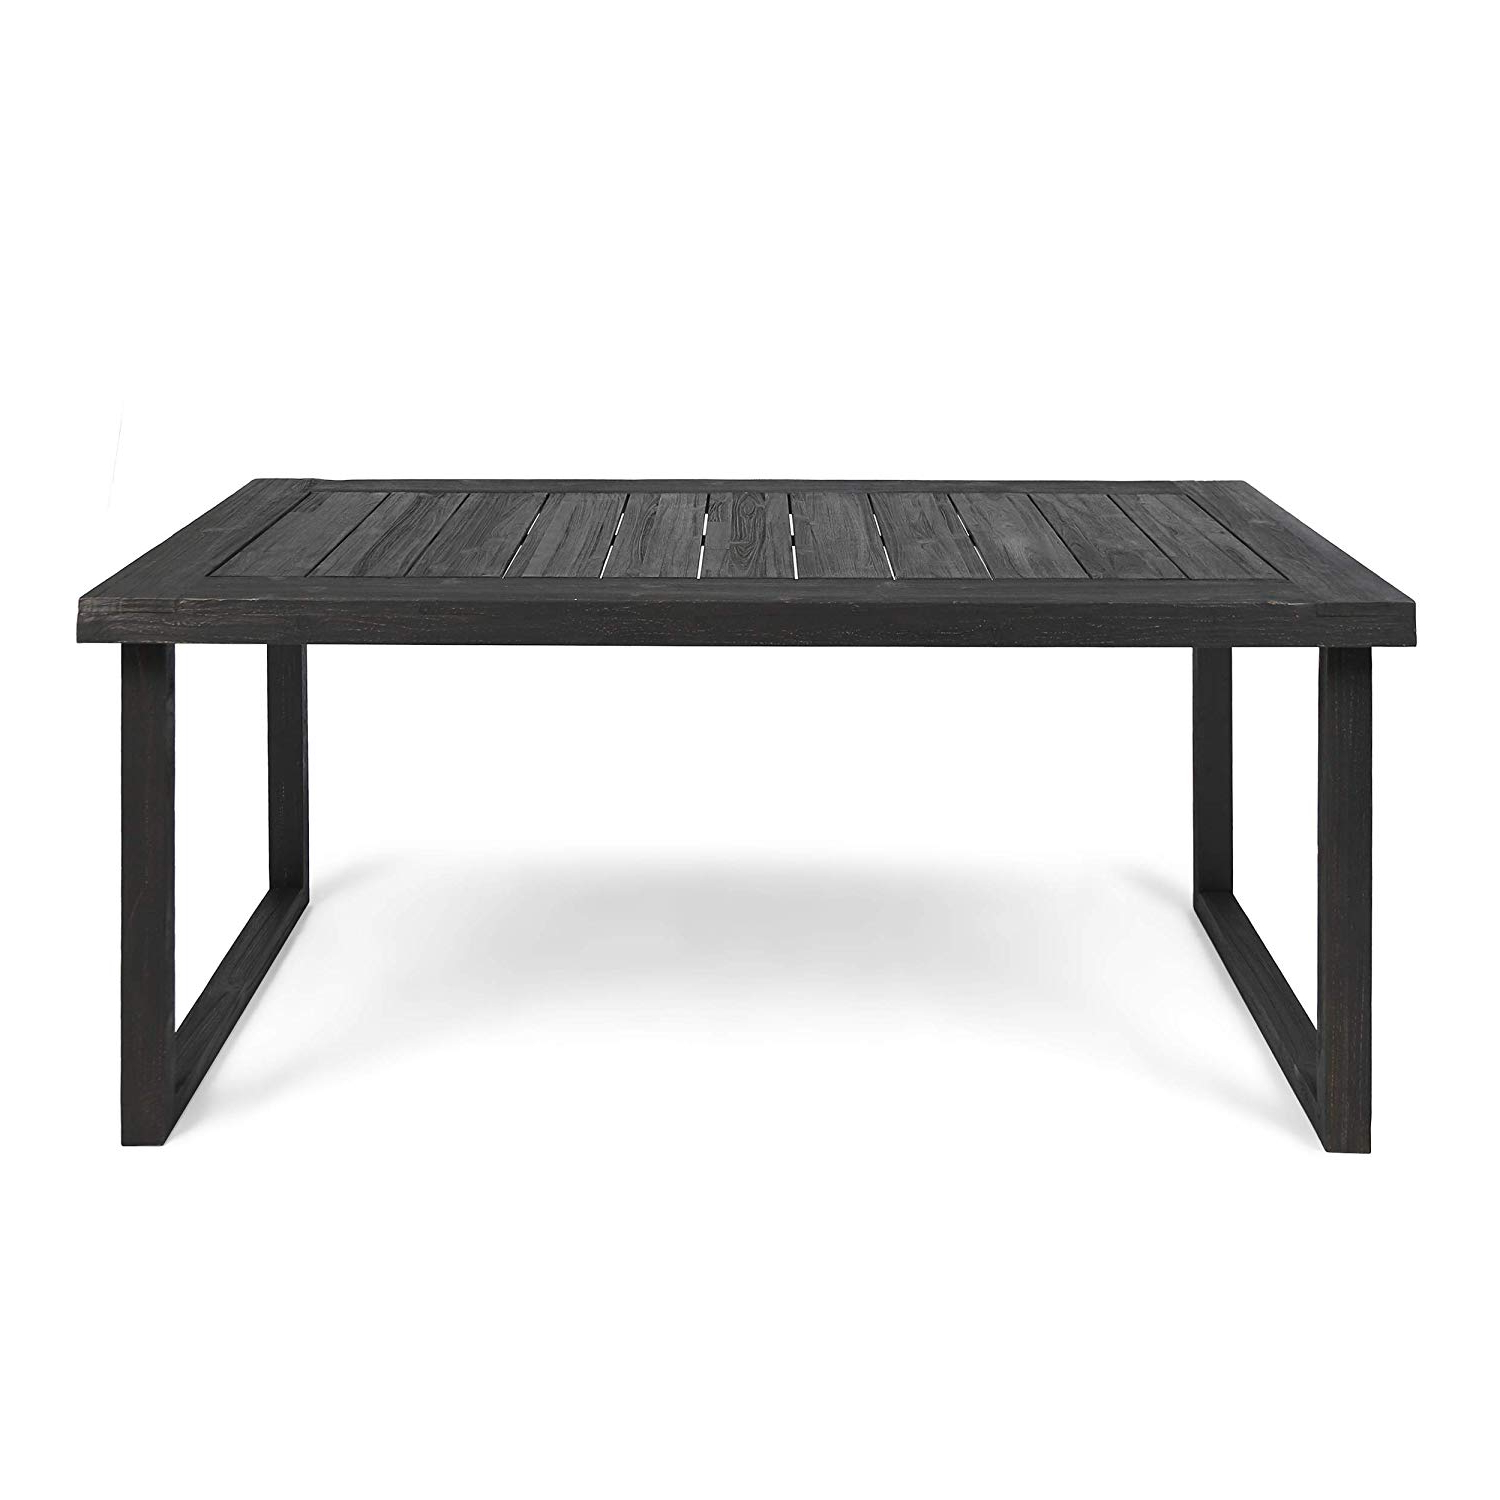 "Popular Acacia Dining Tables With Black Legs Intended For Christopher Knight Home Ann Outdoor 69"" Acacia Wood Dining Table, Sandblast Dark Gray Finish (View 12 of 30)"